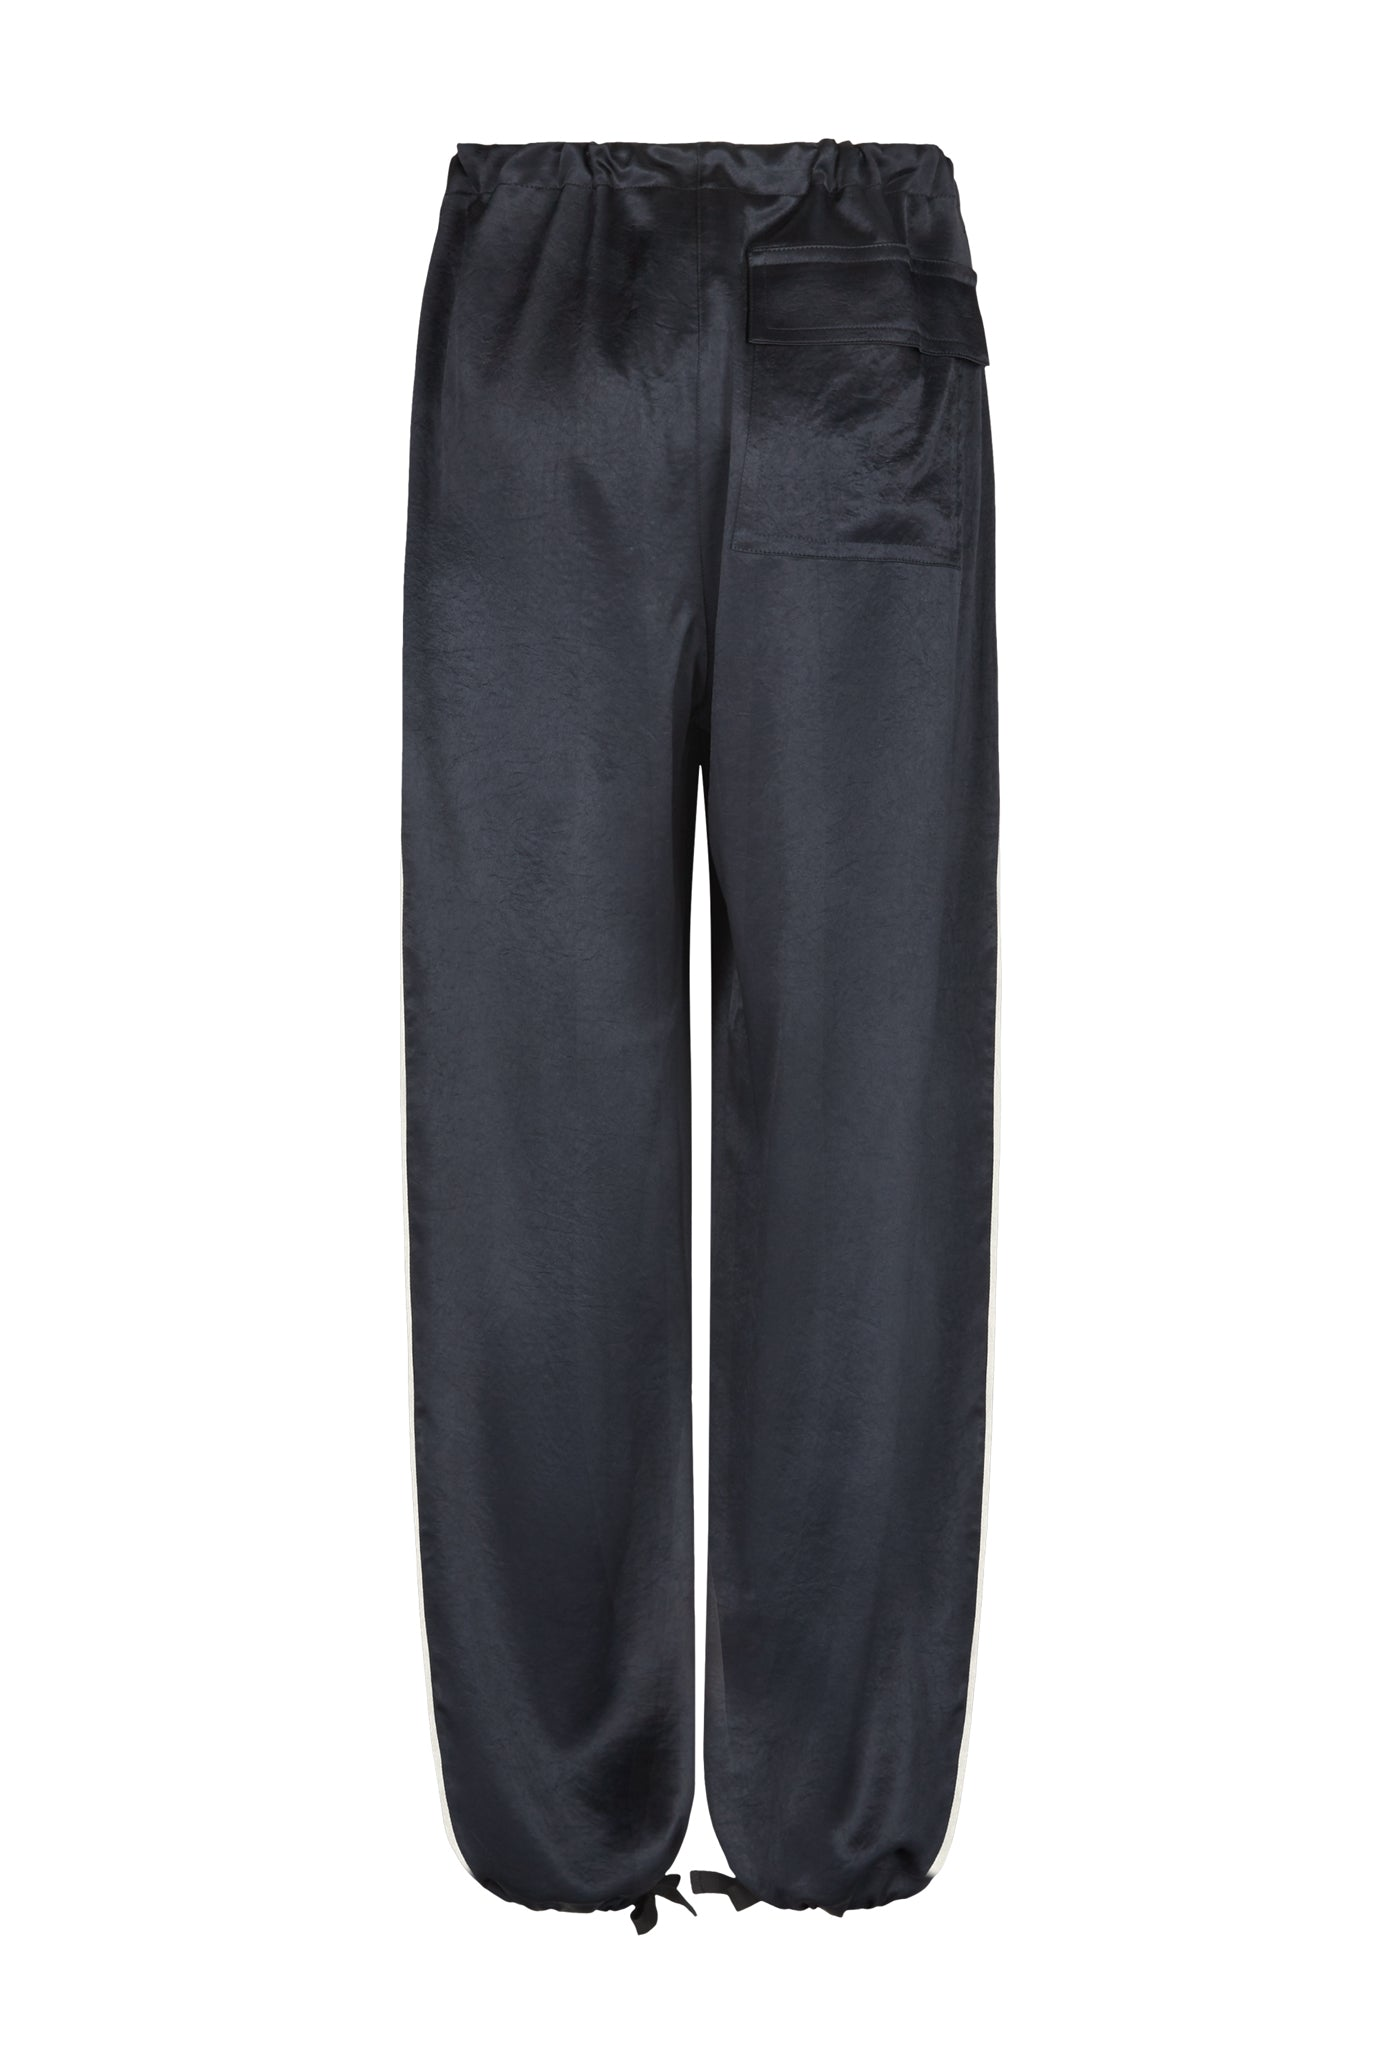 The Lola Cropped Trouser - Navy Natural Fabric